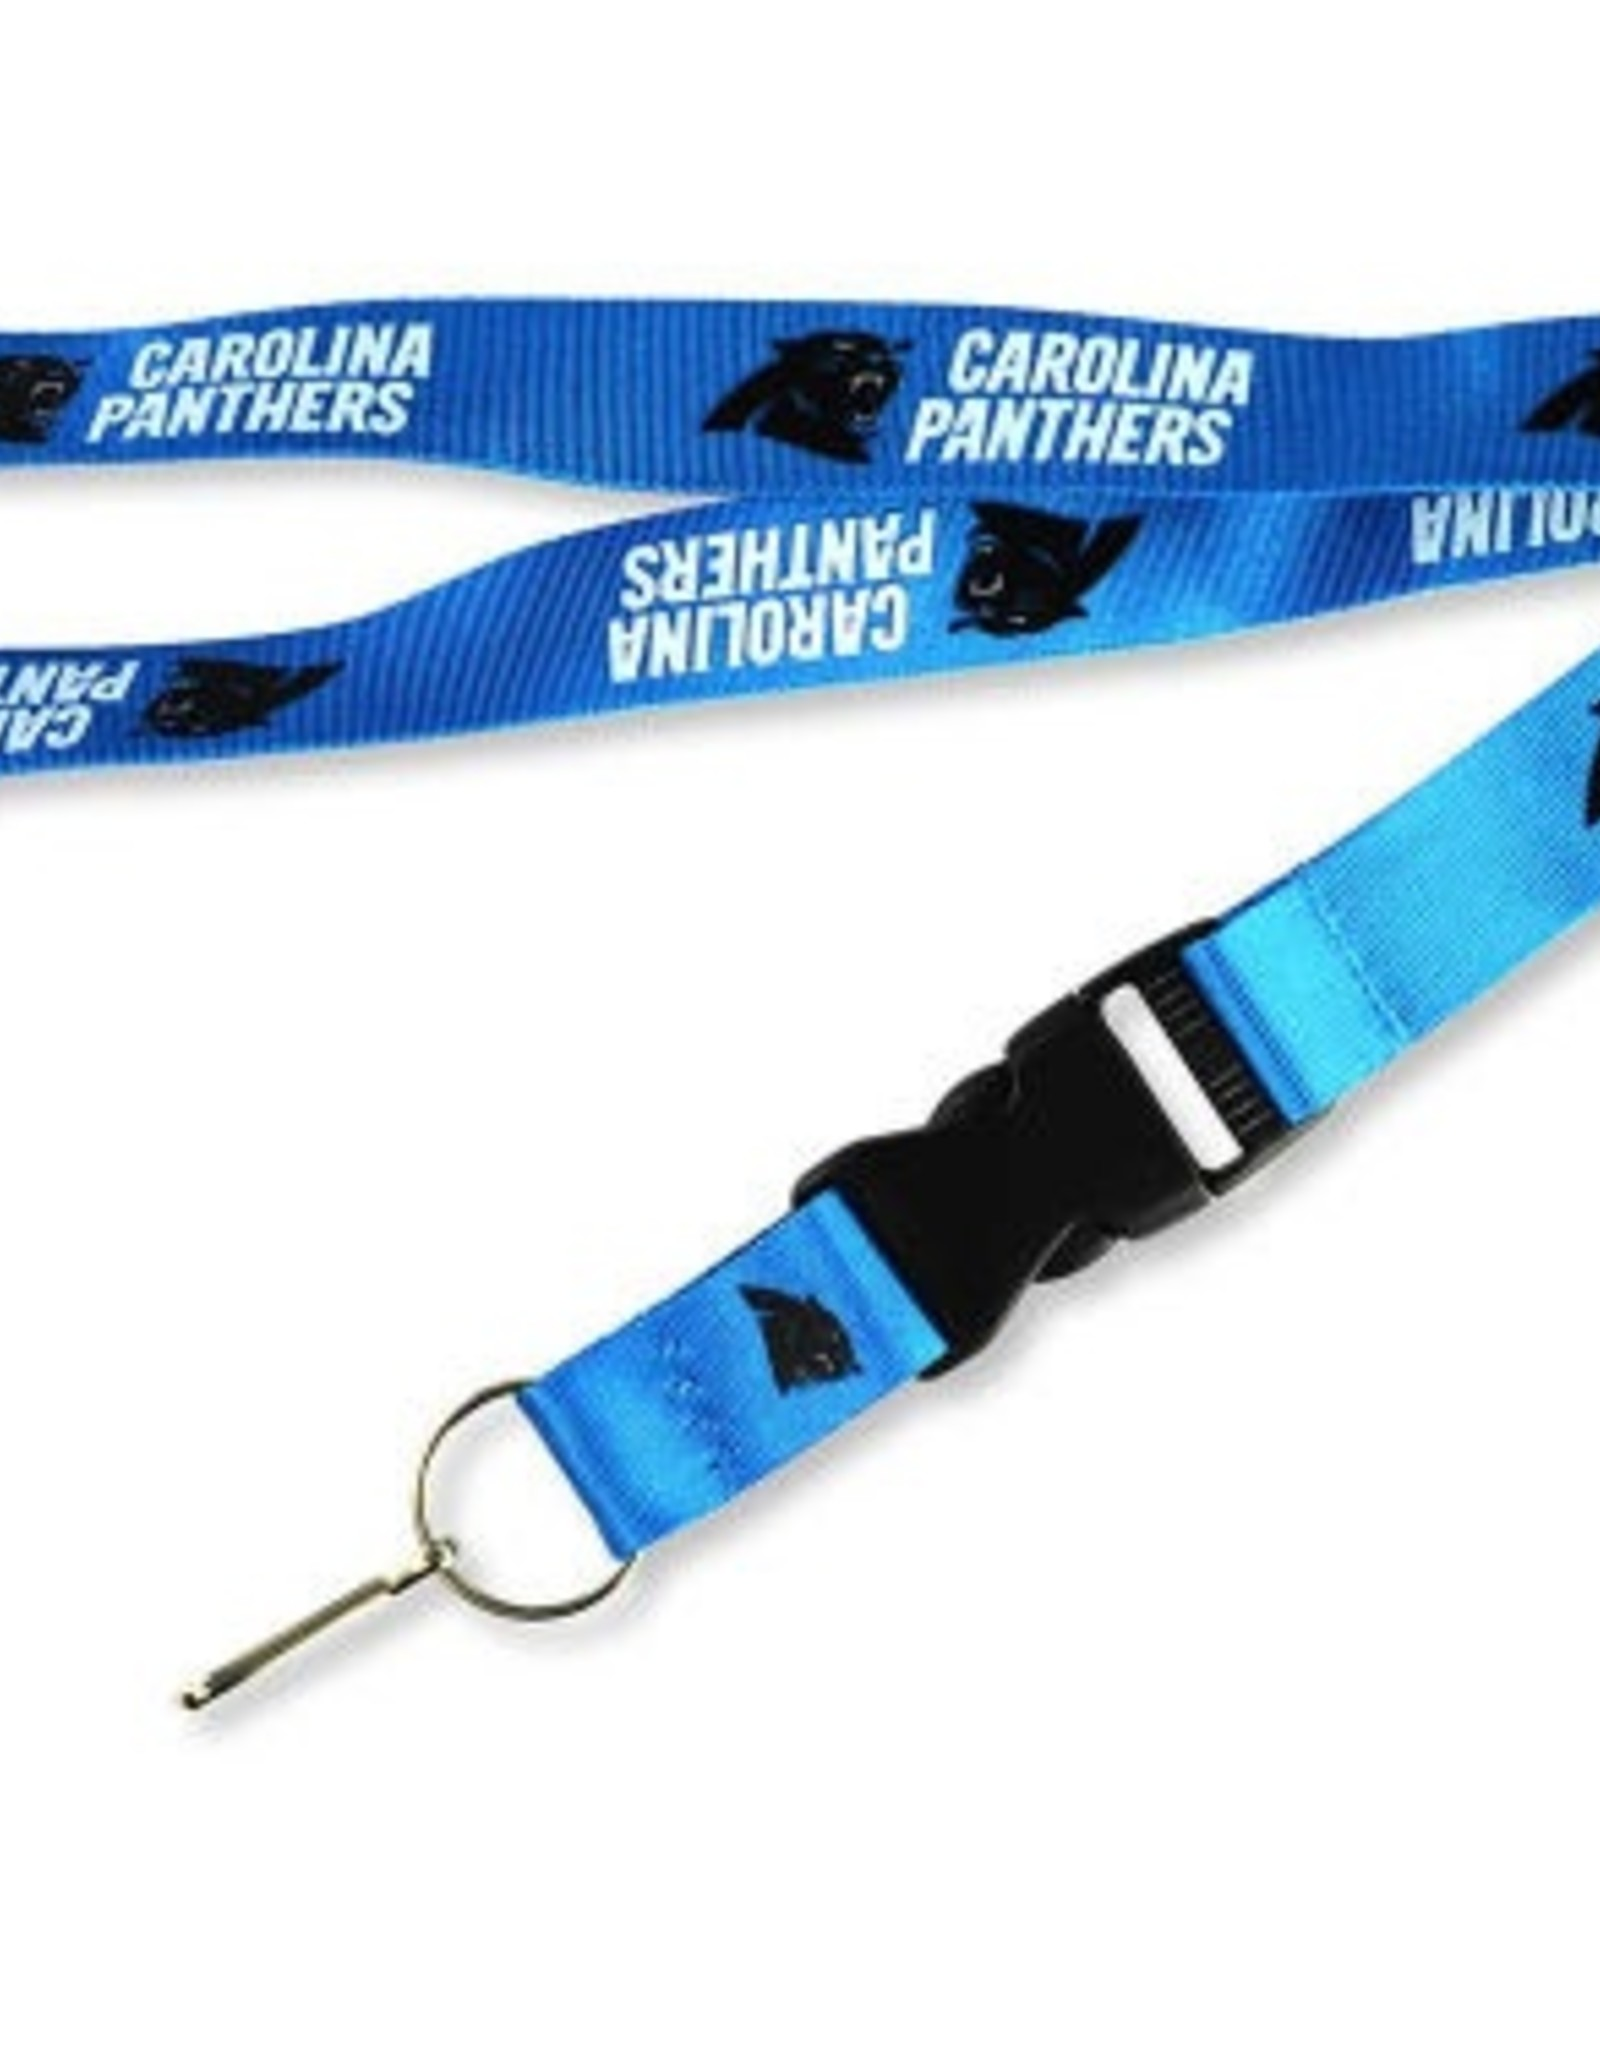 AMINCO Carolina Panthers Team Lanyard